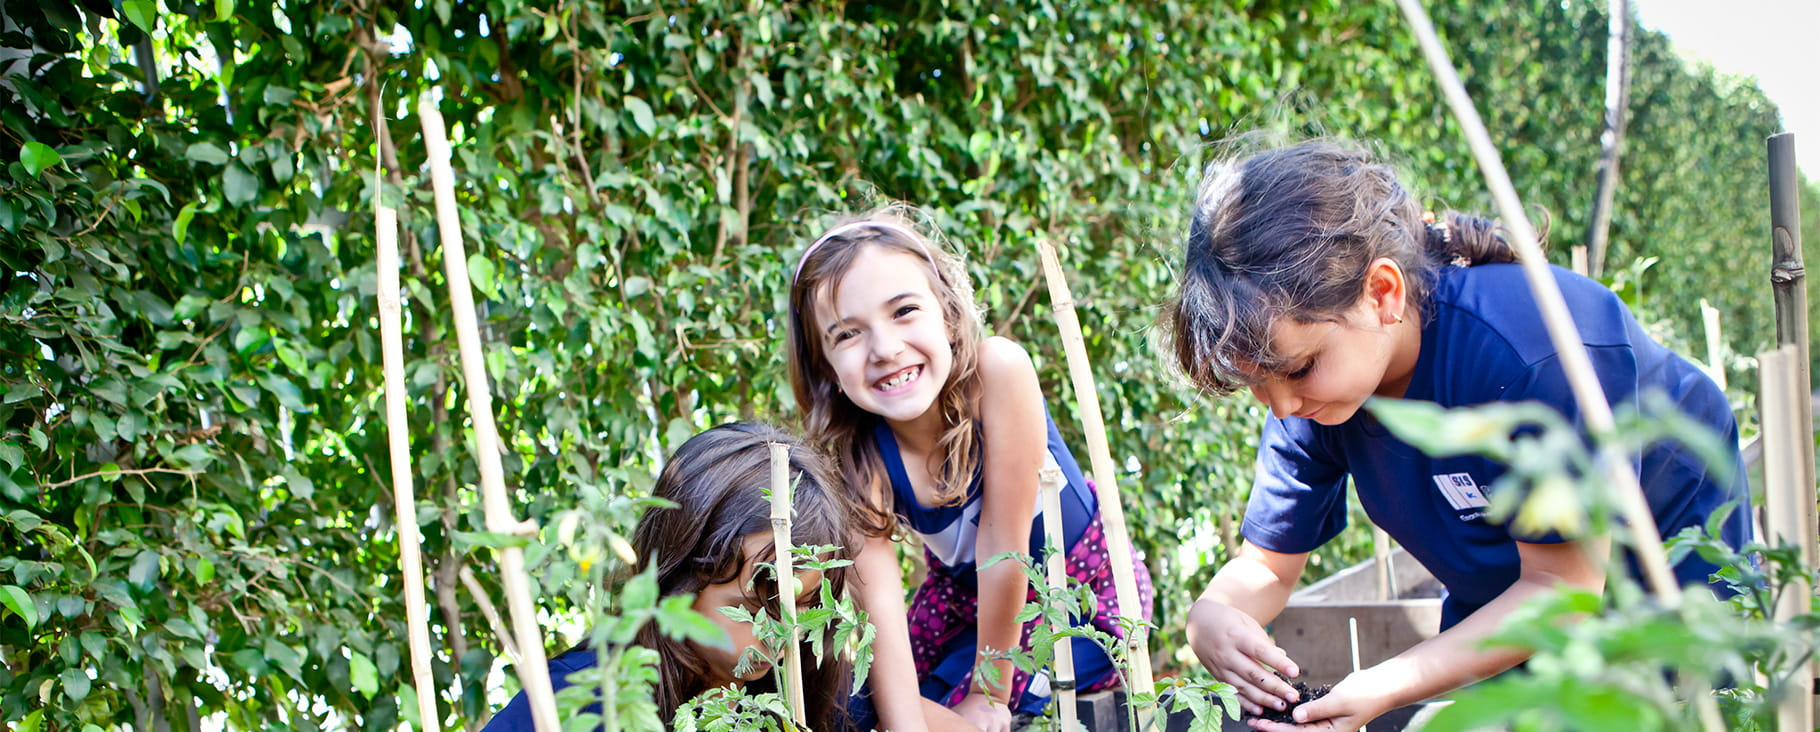 students gardening and girl laughing